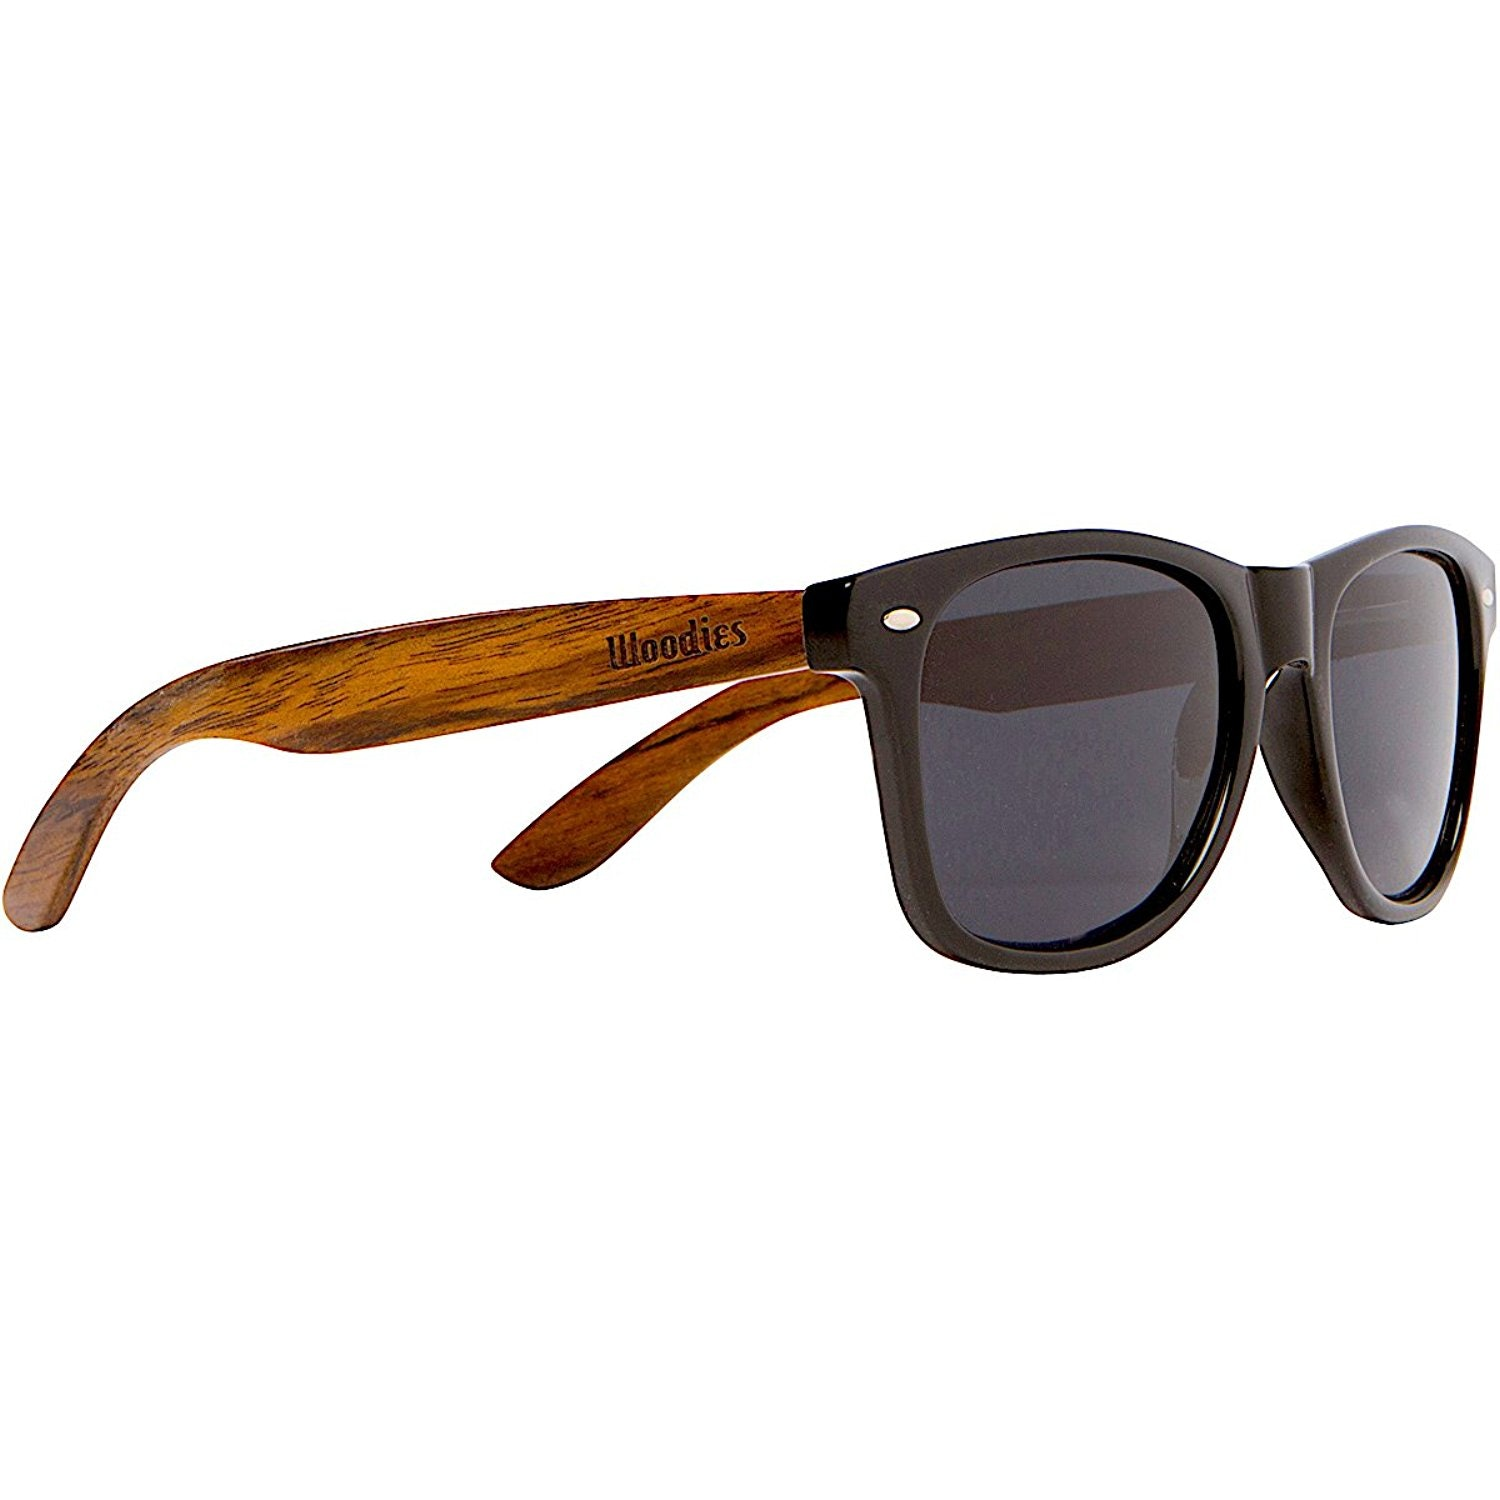 woodies sunglasses